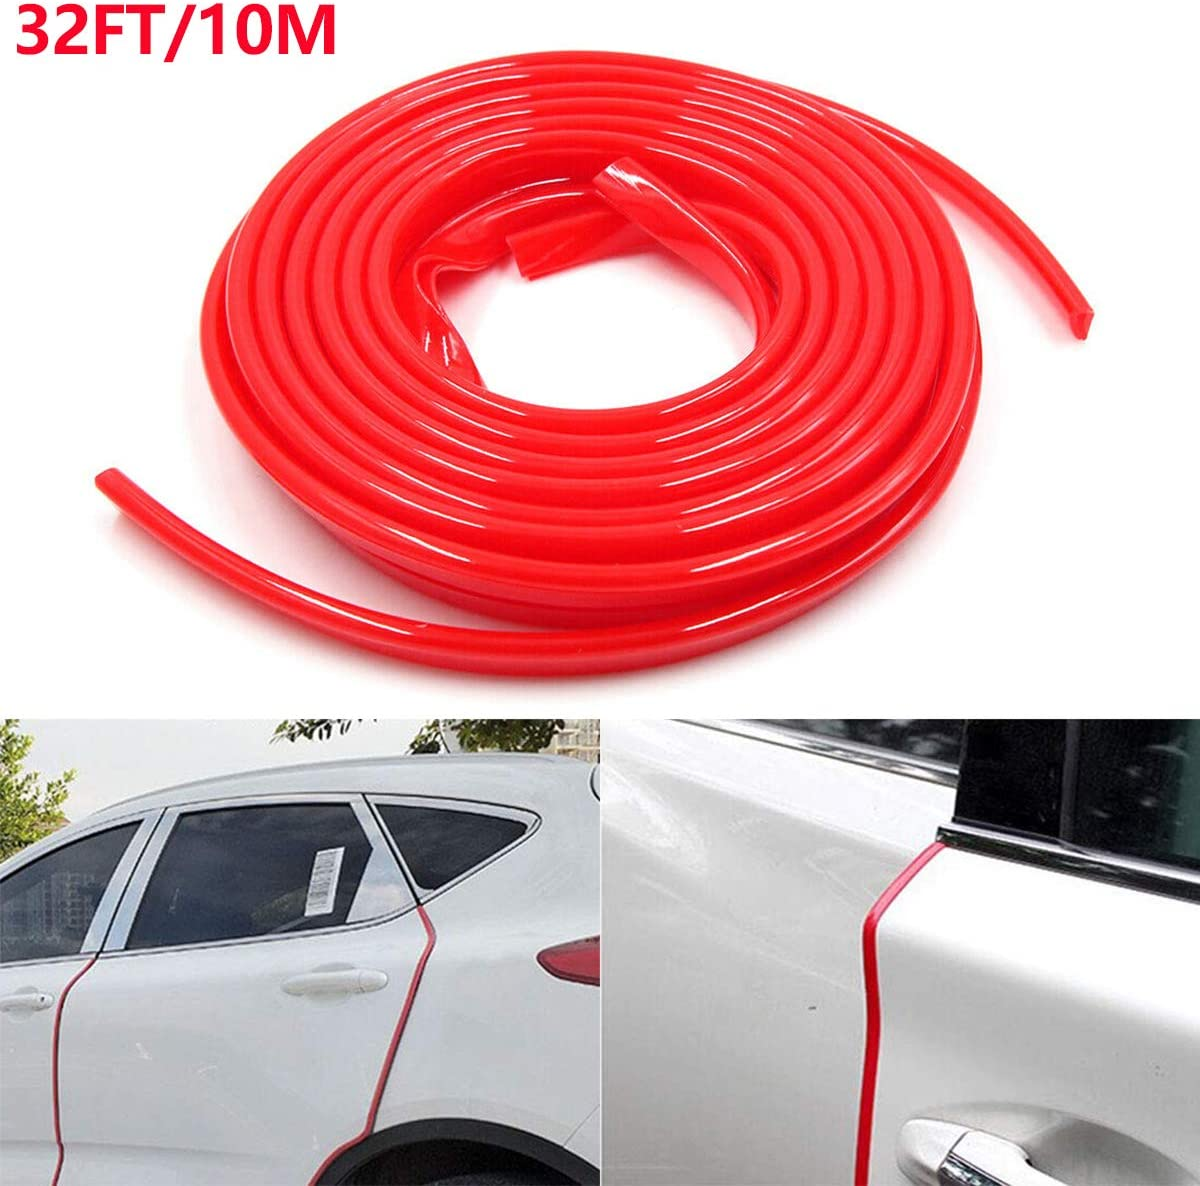 10M 32Ft AGAIN Car Door Edge Protector SEEU Red Flexible Universal Car Edge Trim Rubber Line Seal Protector Compatible with Most Car